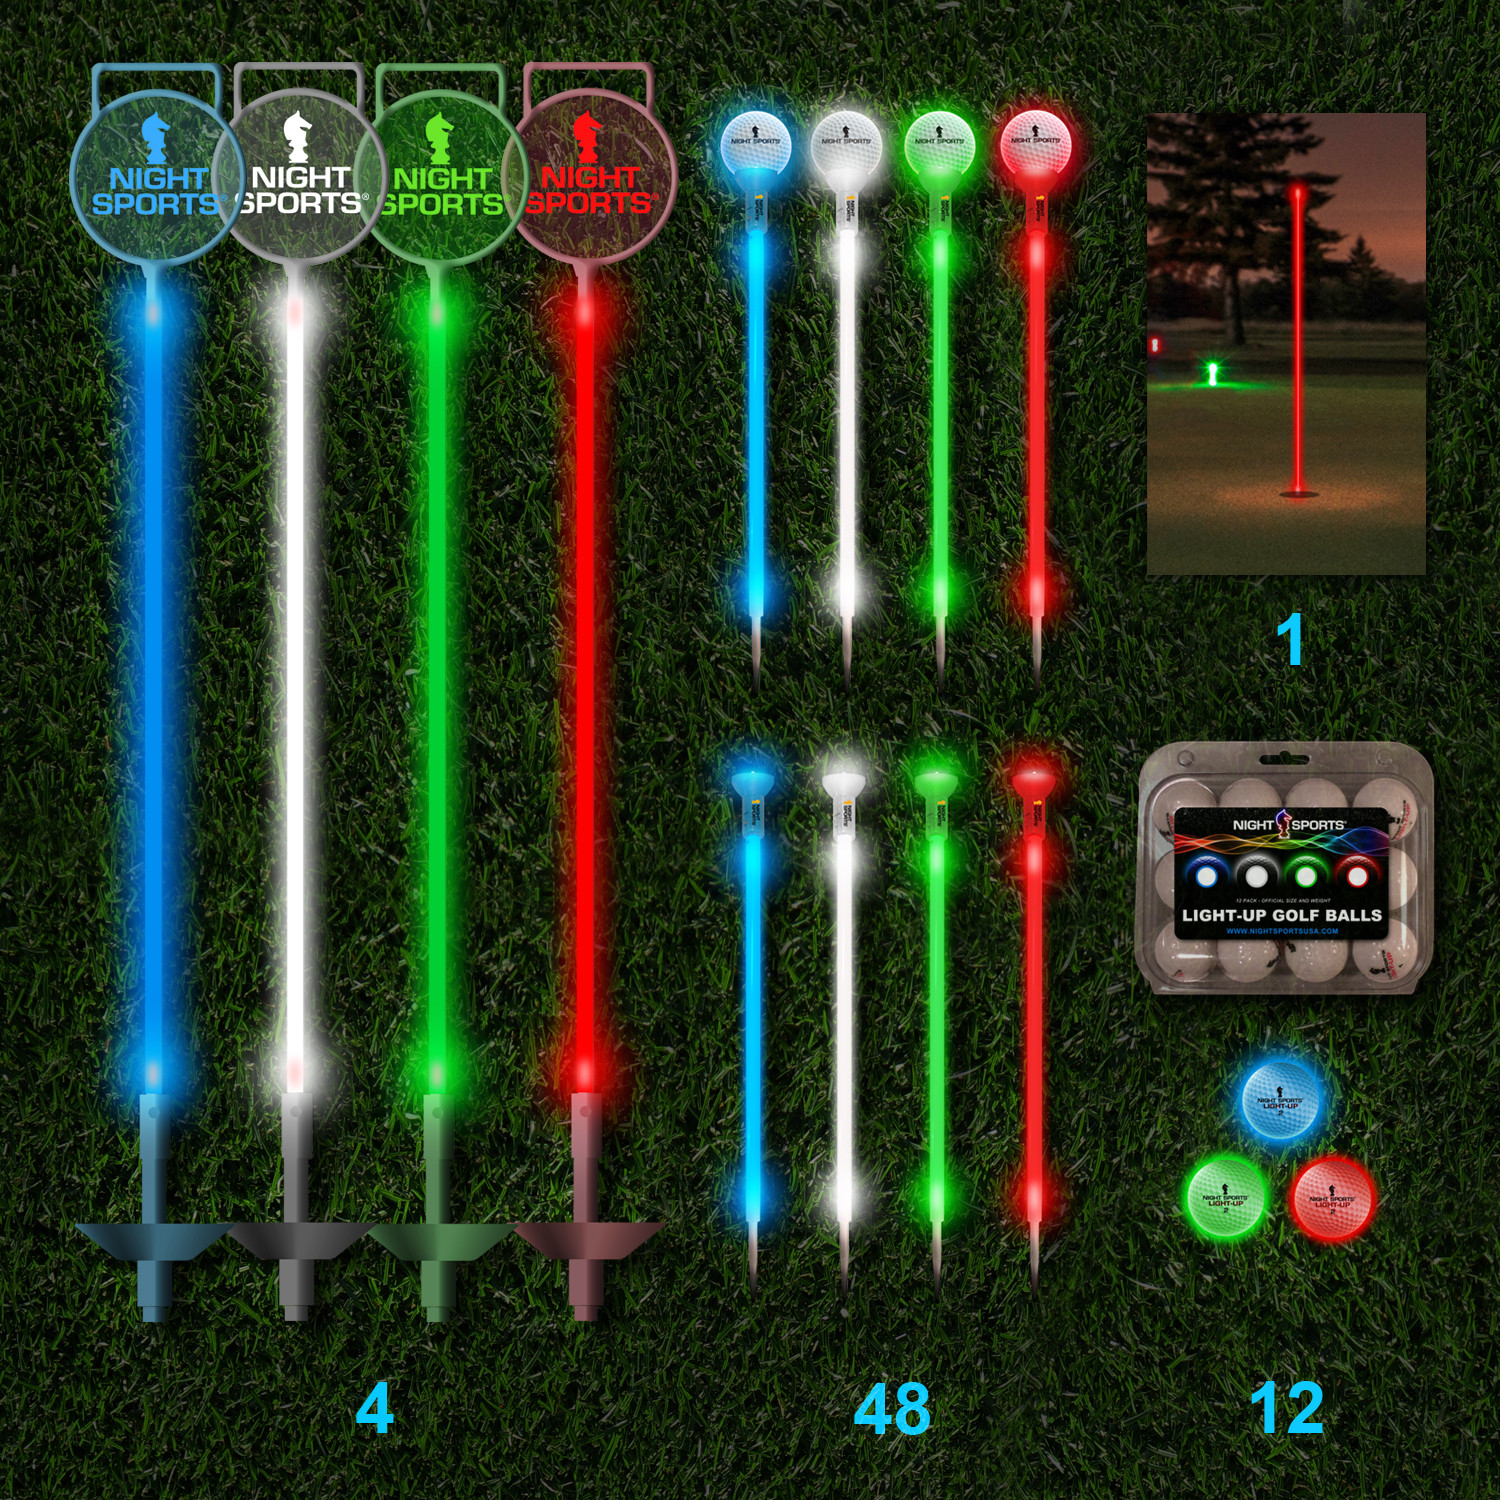 lightup balls weigh search juggle results index juggling poi light ball lighting mm led glow up store set of